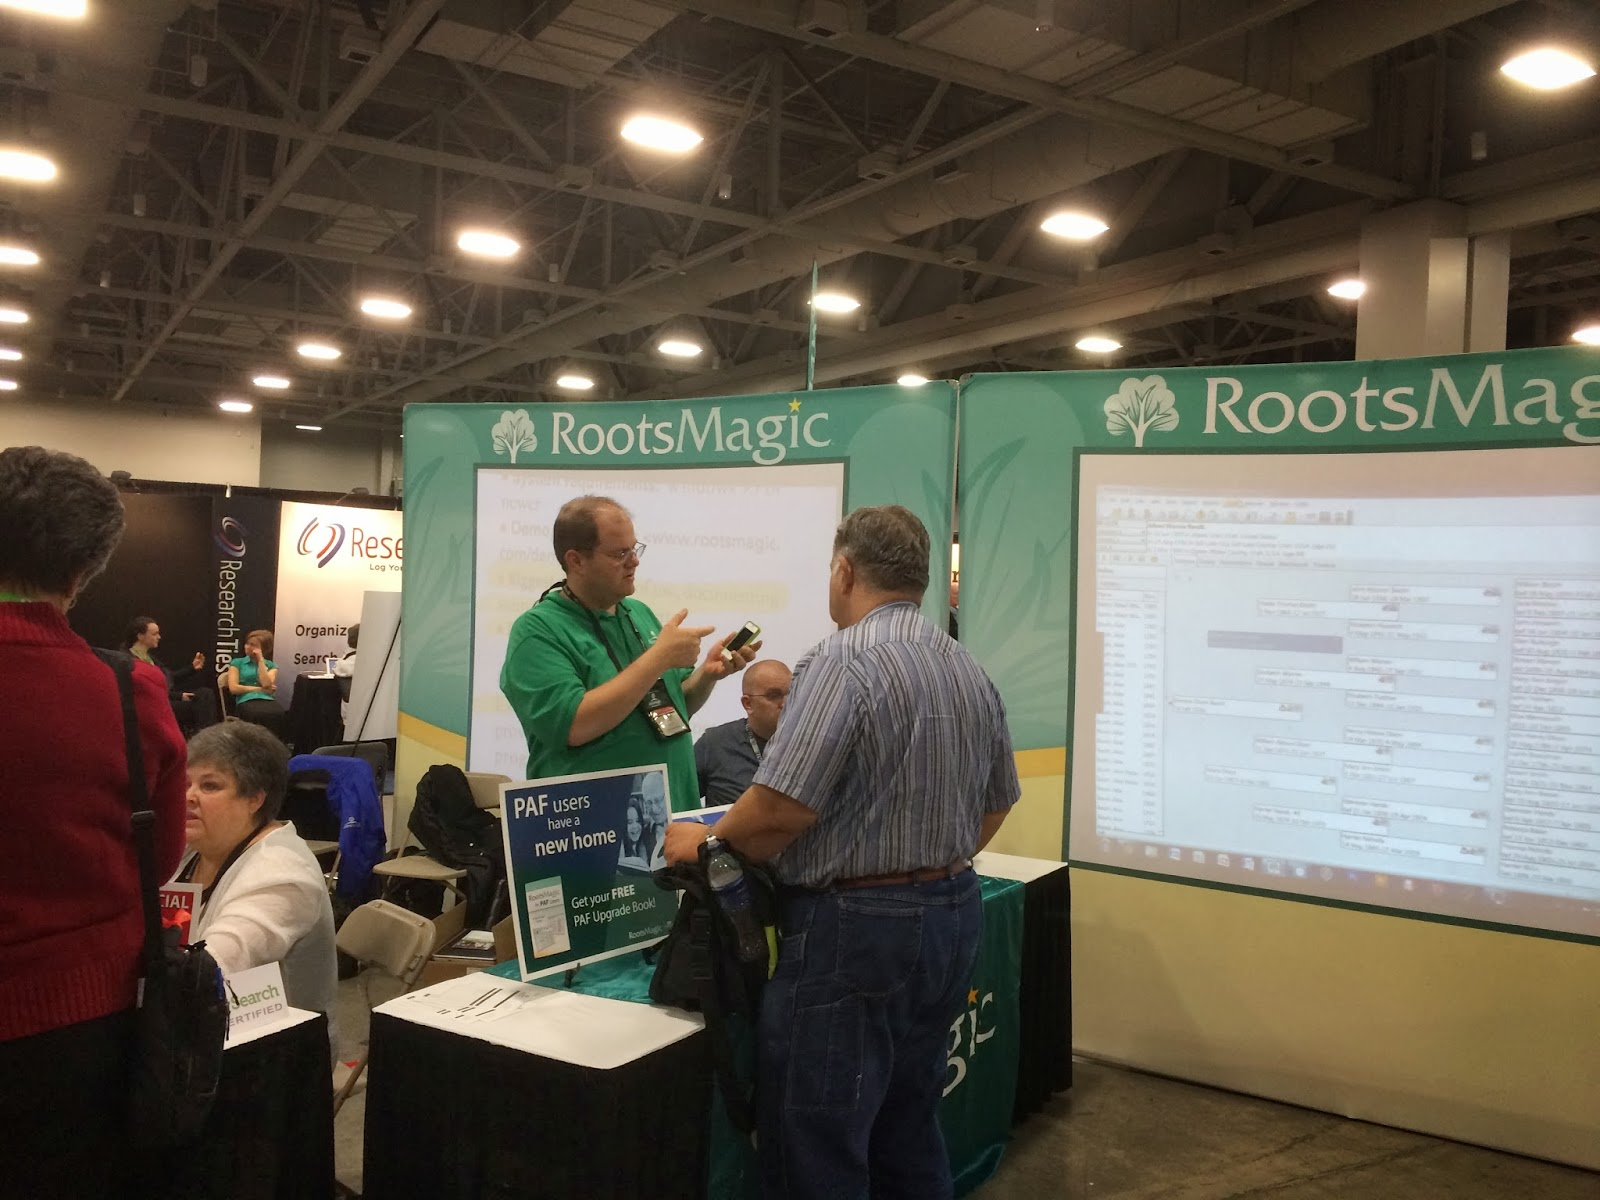 RootsMagic Display in Expo Hall